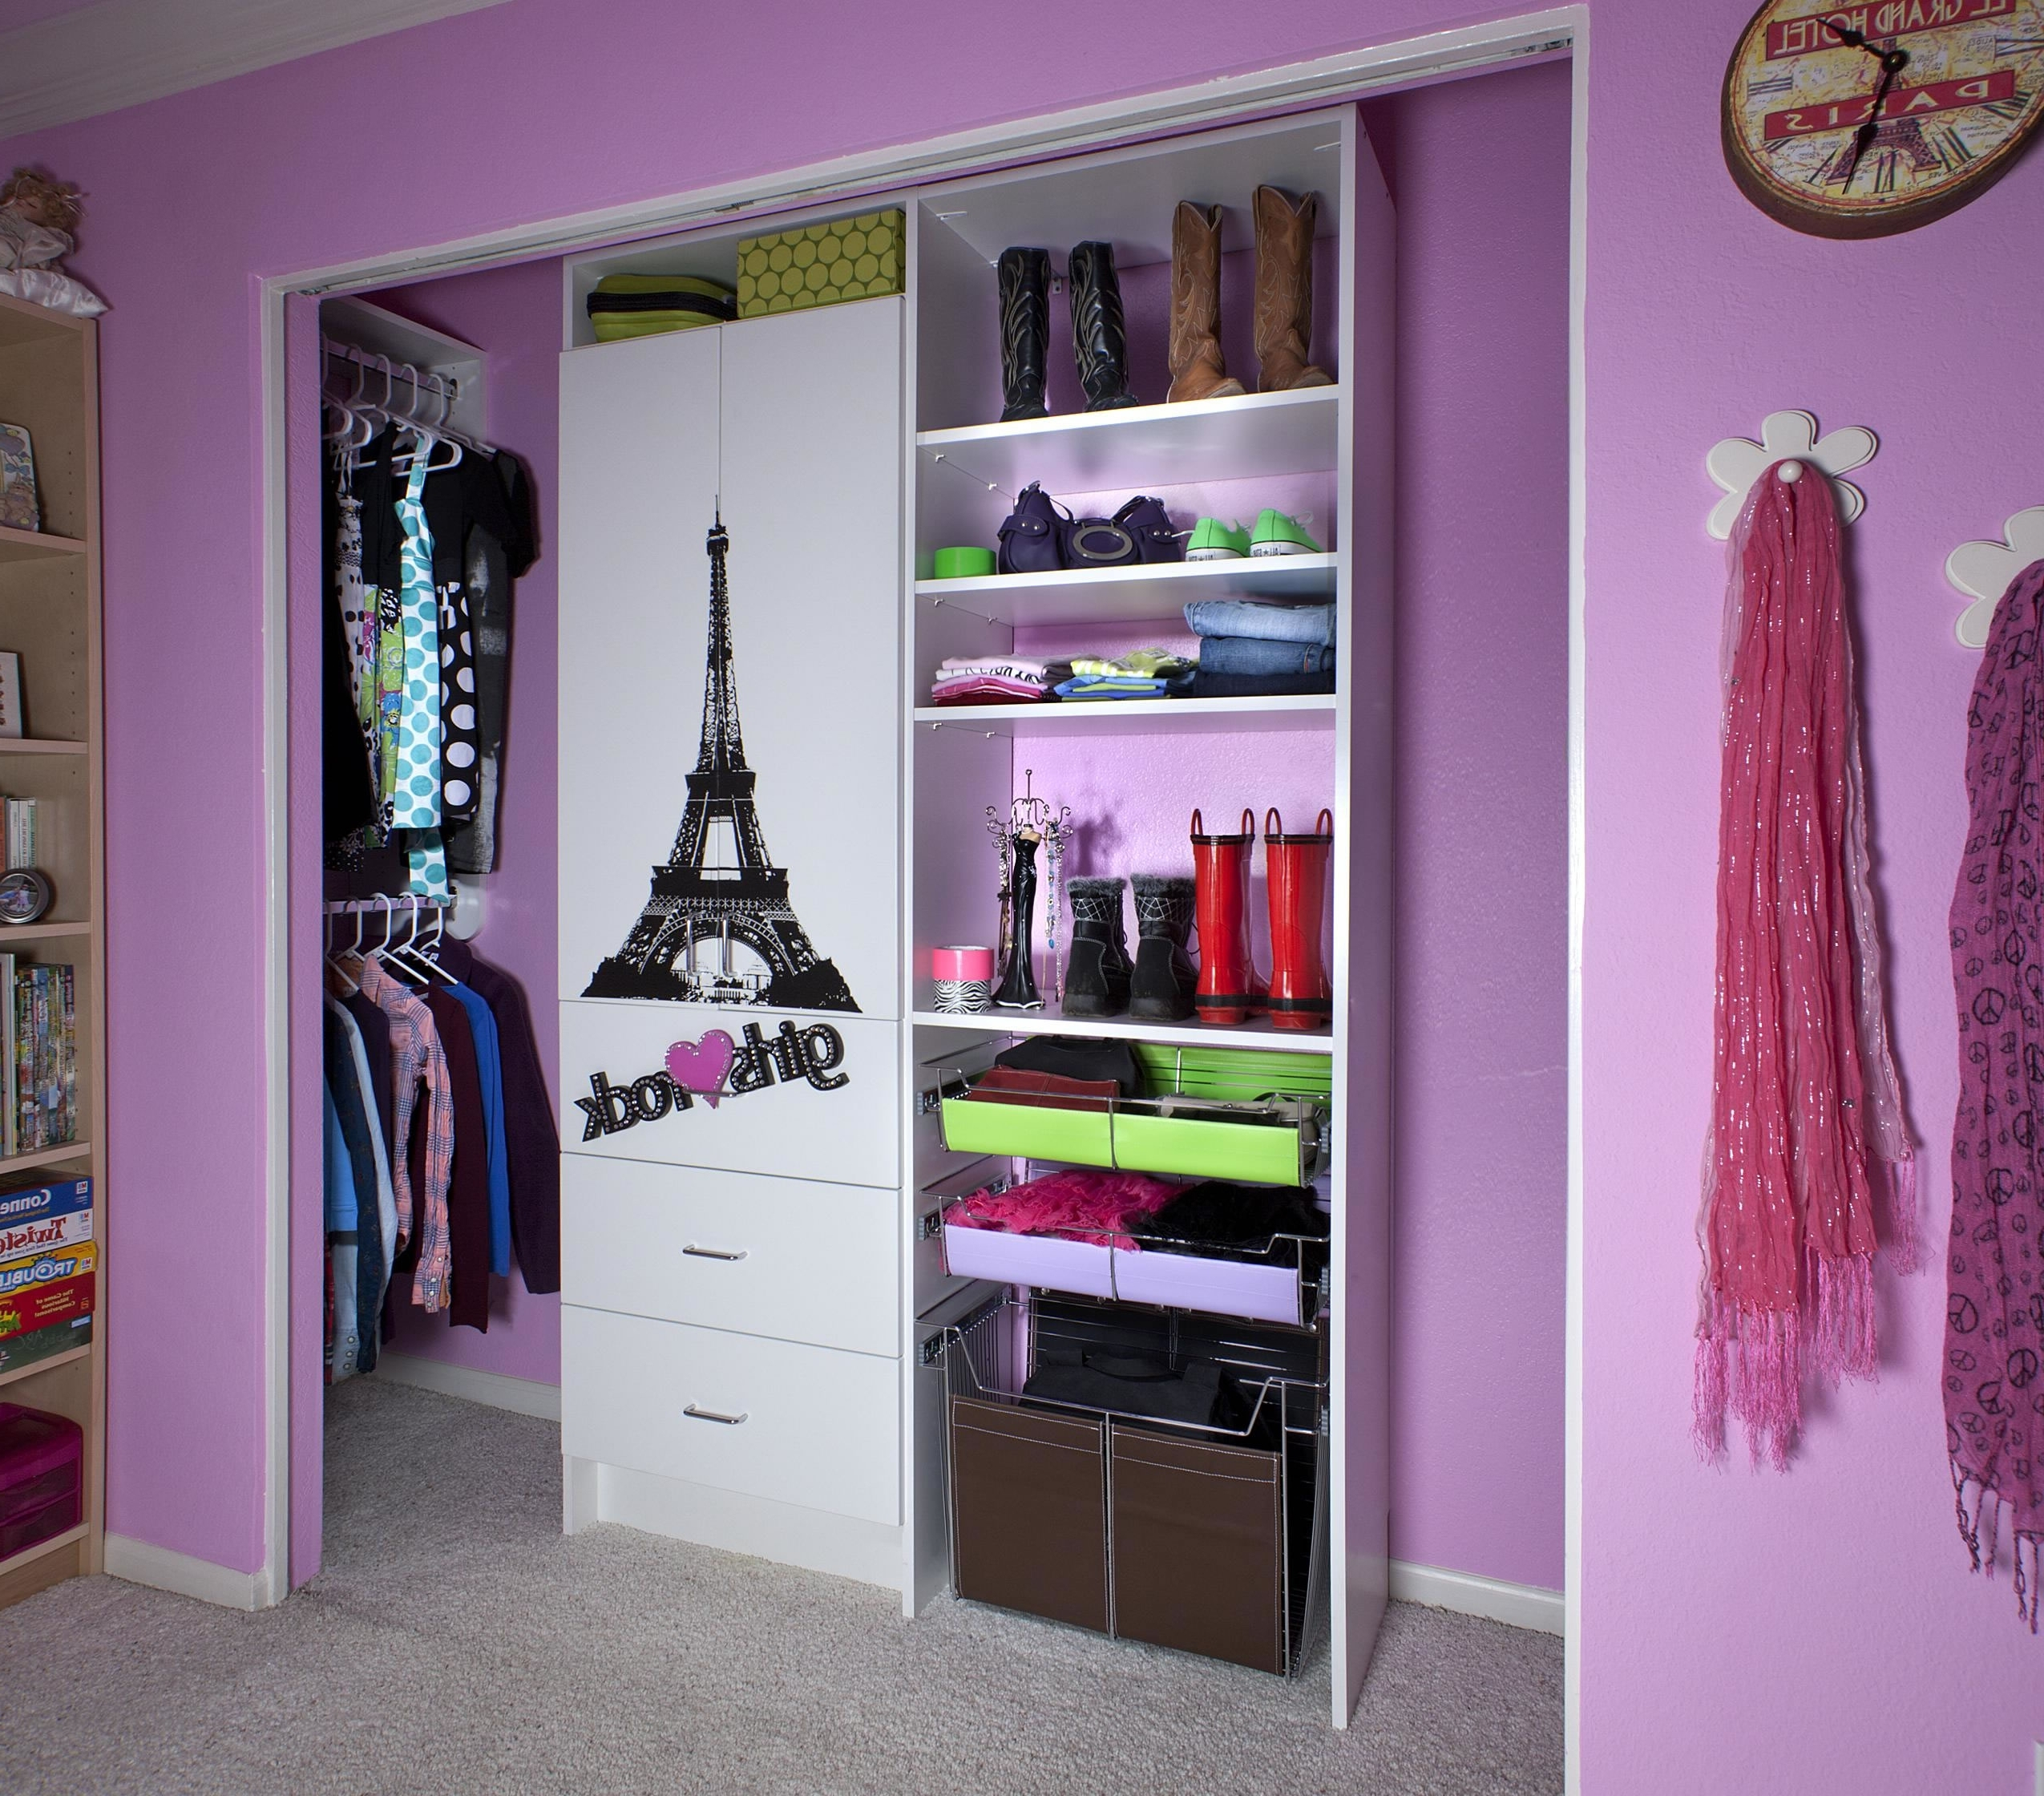 Closet & Storage : Girls Rock Closet Wardrobe Ideas With Sliding Pertaining To Most Recent Girls Wardrobes (View 4 of 15)